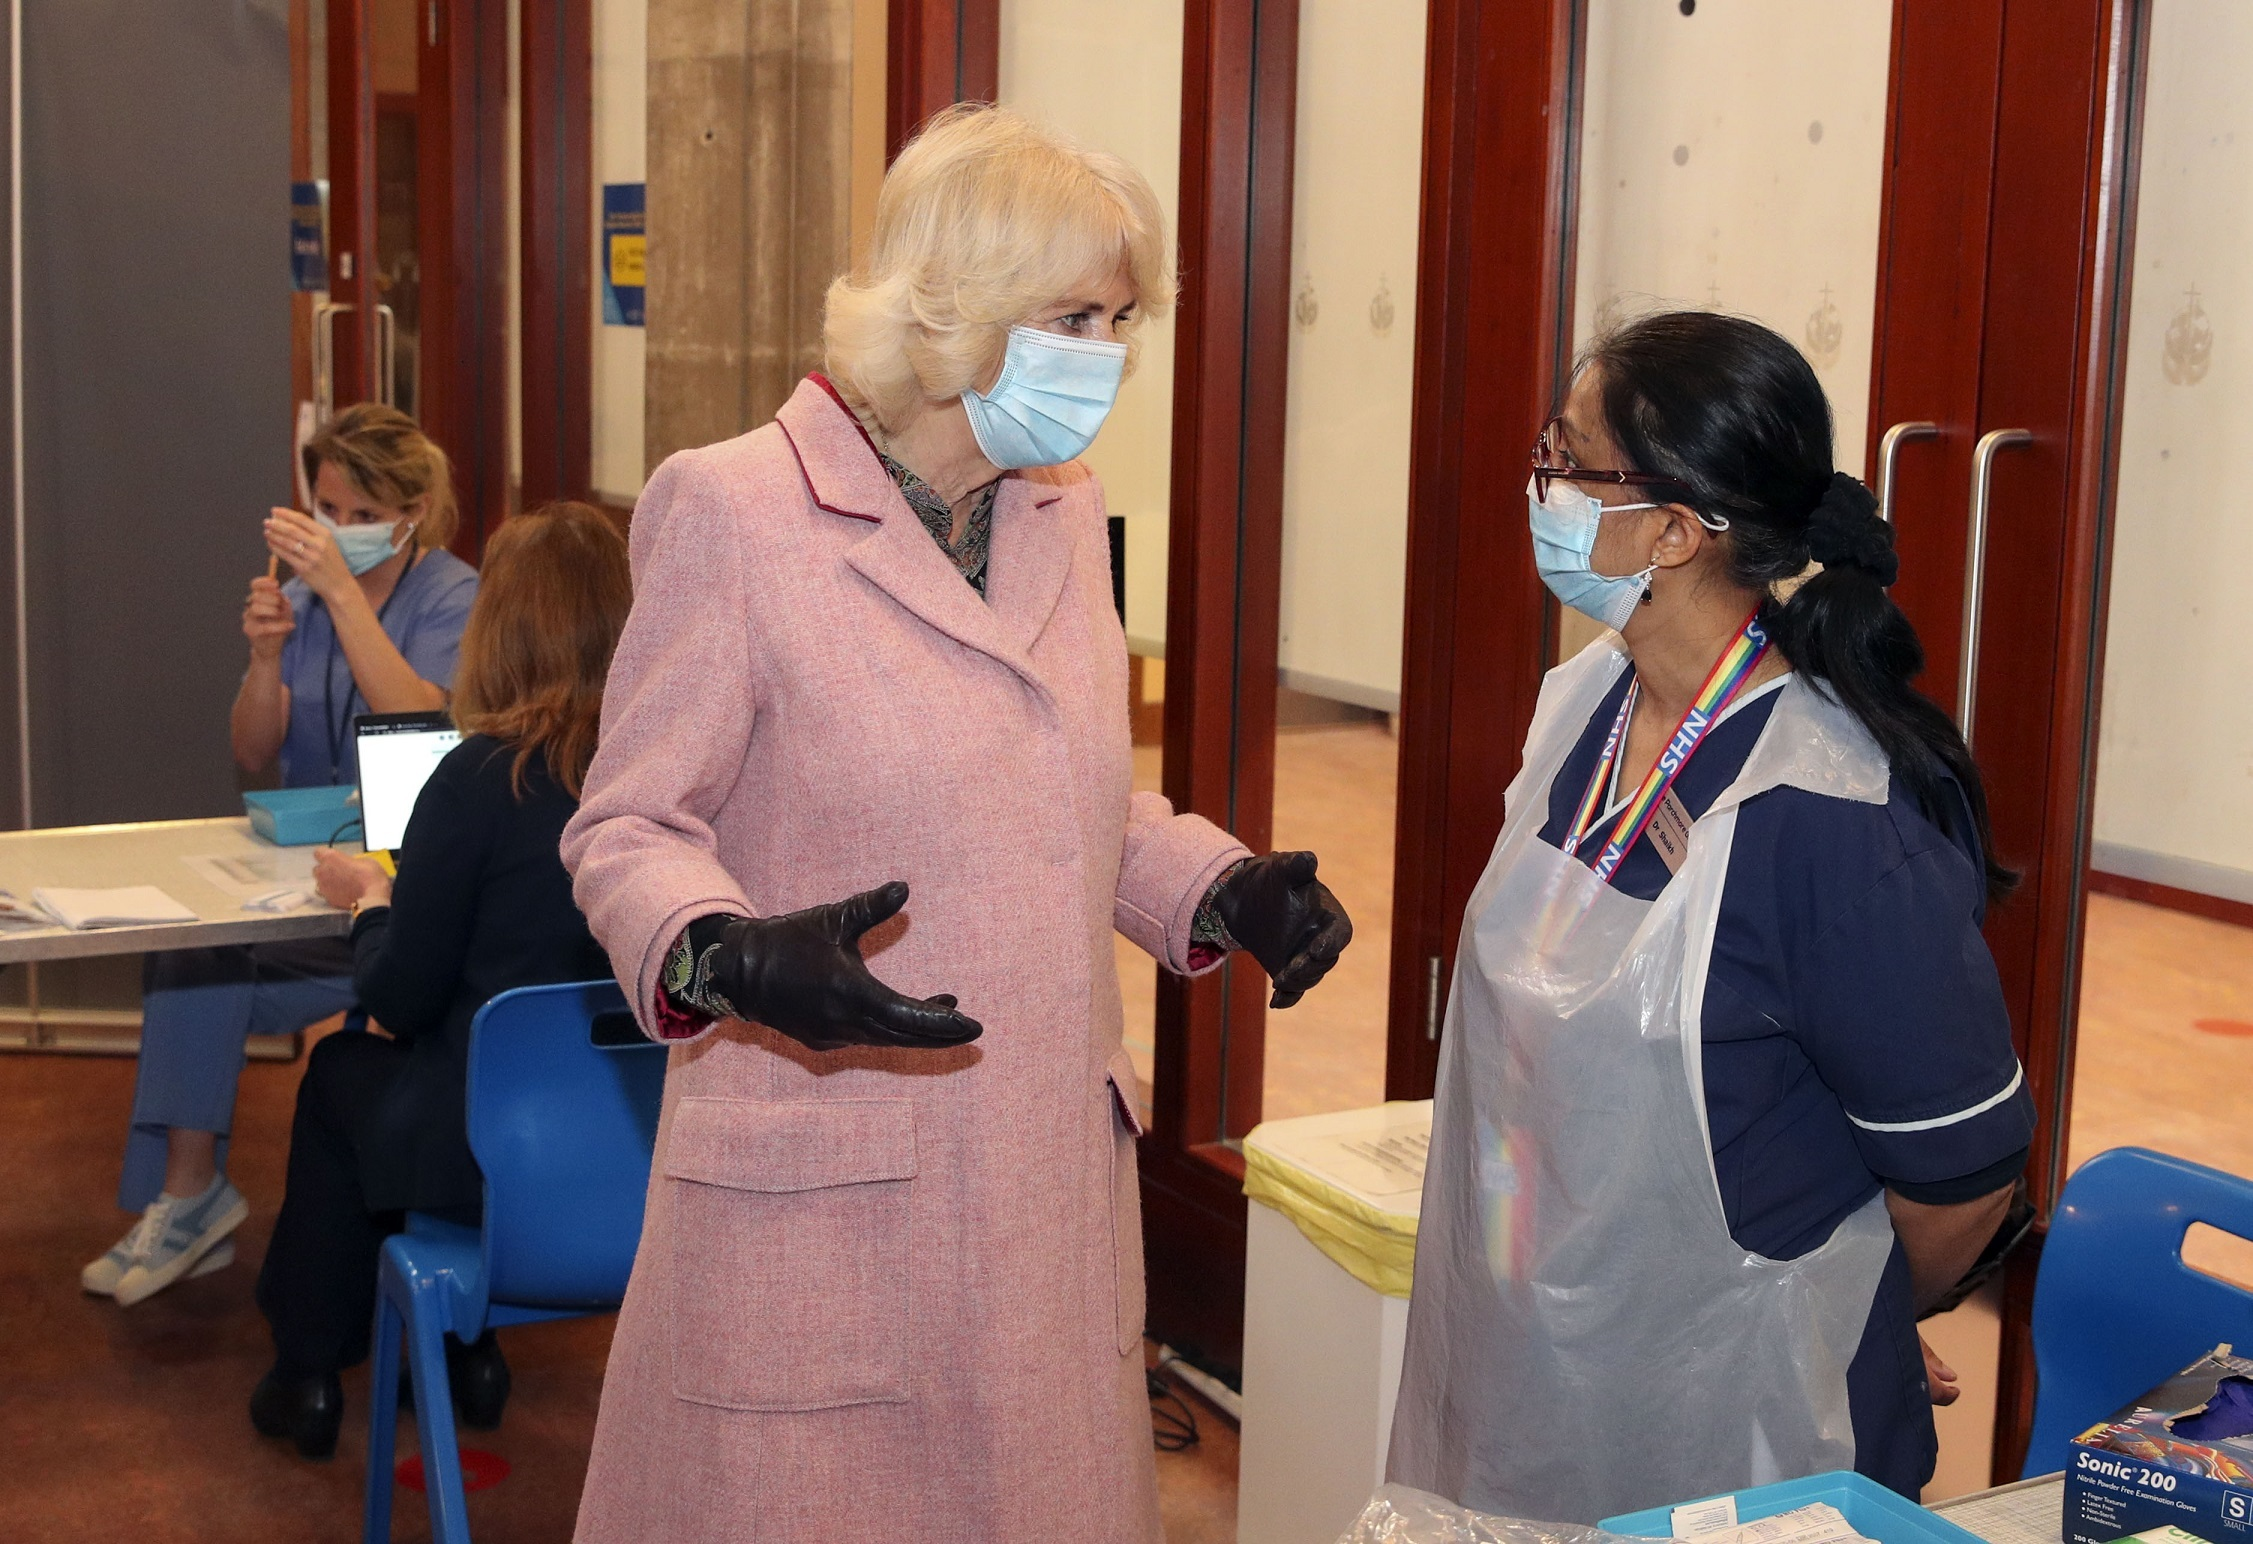 The Duchess of Cornwall talks to Dr Shaikh (right) during a visit to the Community Vaccination Centre at St Pauls Church